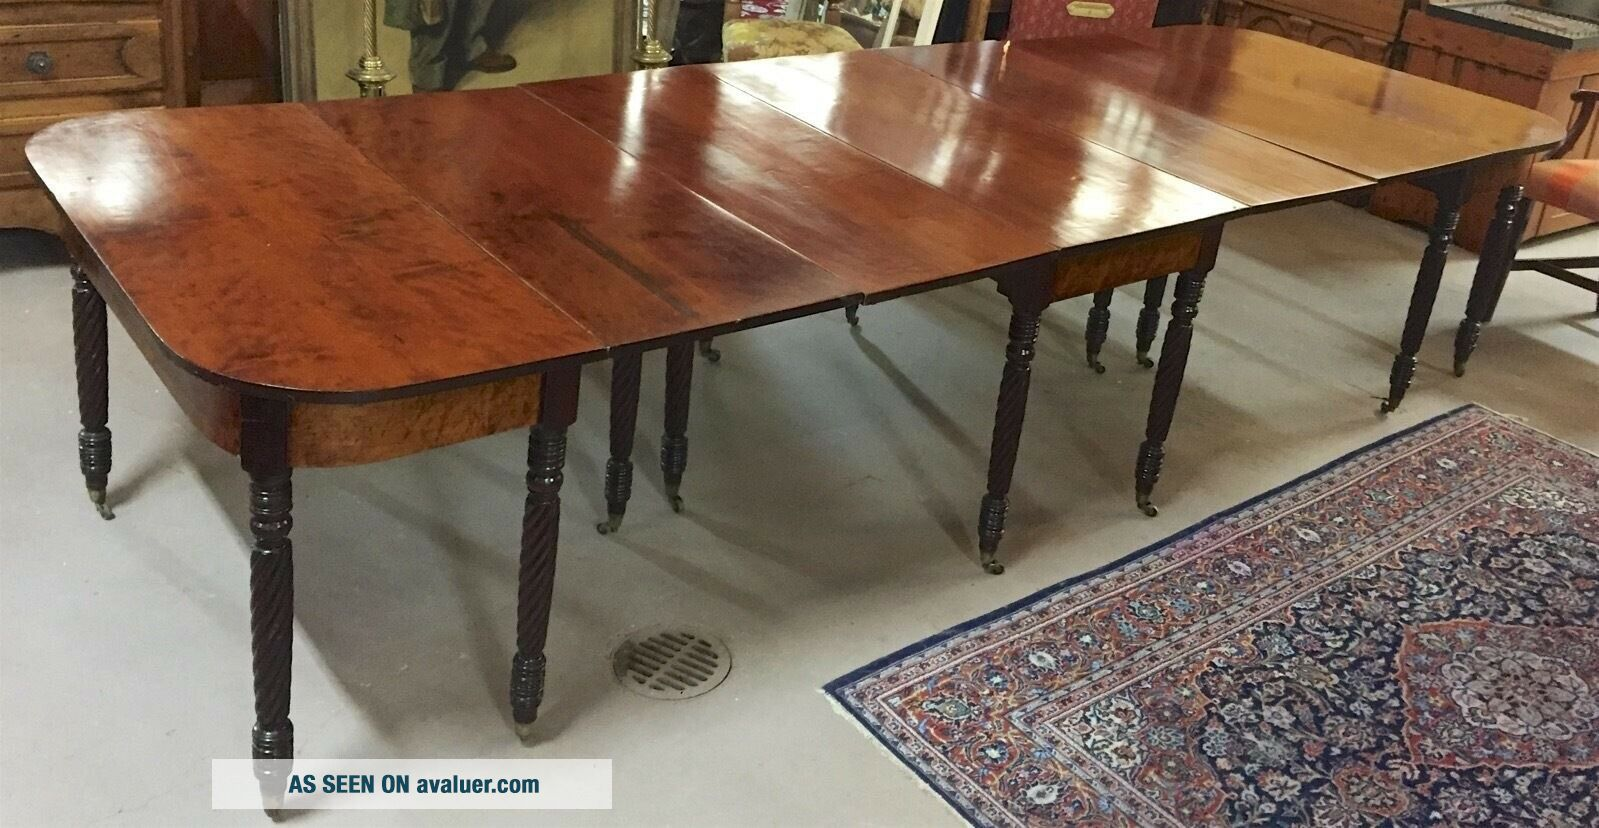 Antique 3 - Part Federal/Sheraton Mahogany Dining/Banquet Table c1820s—Magnificent